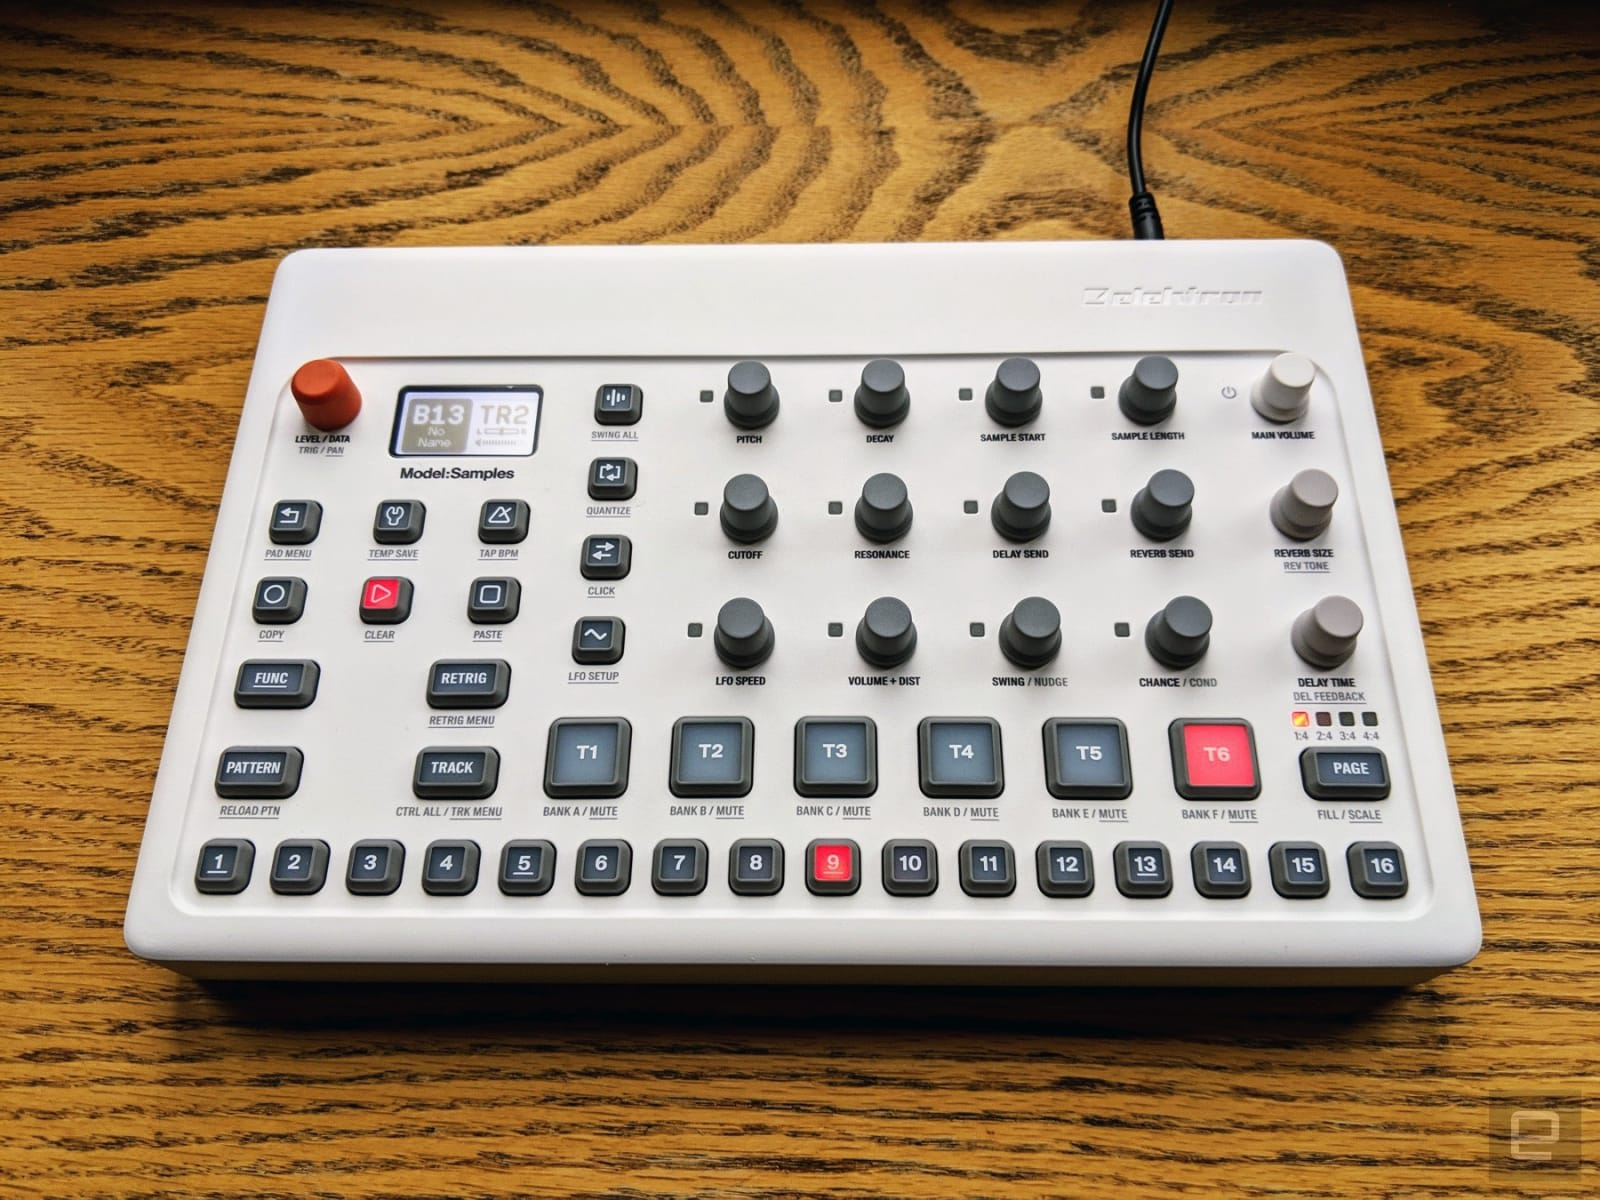 Elektron Model:Samples review: A powerful groovebox for beginners